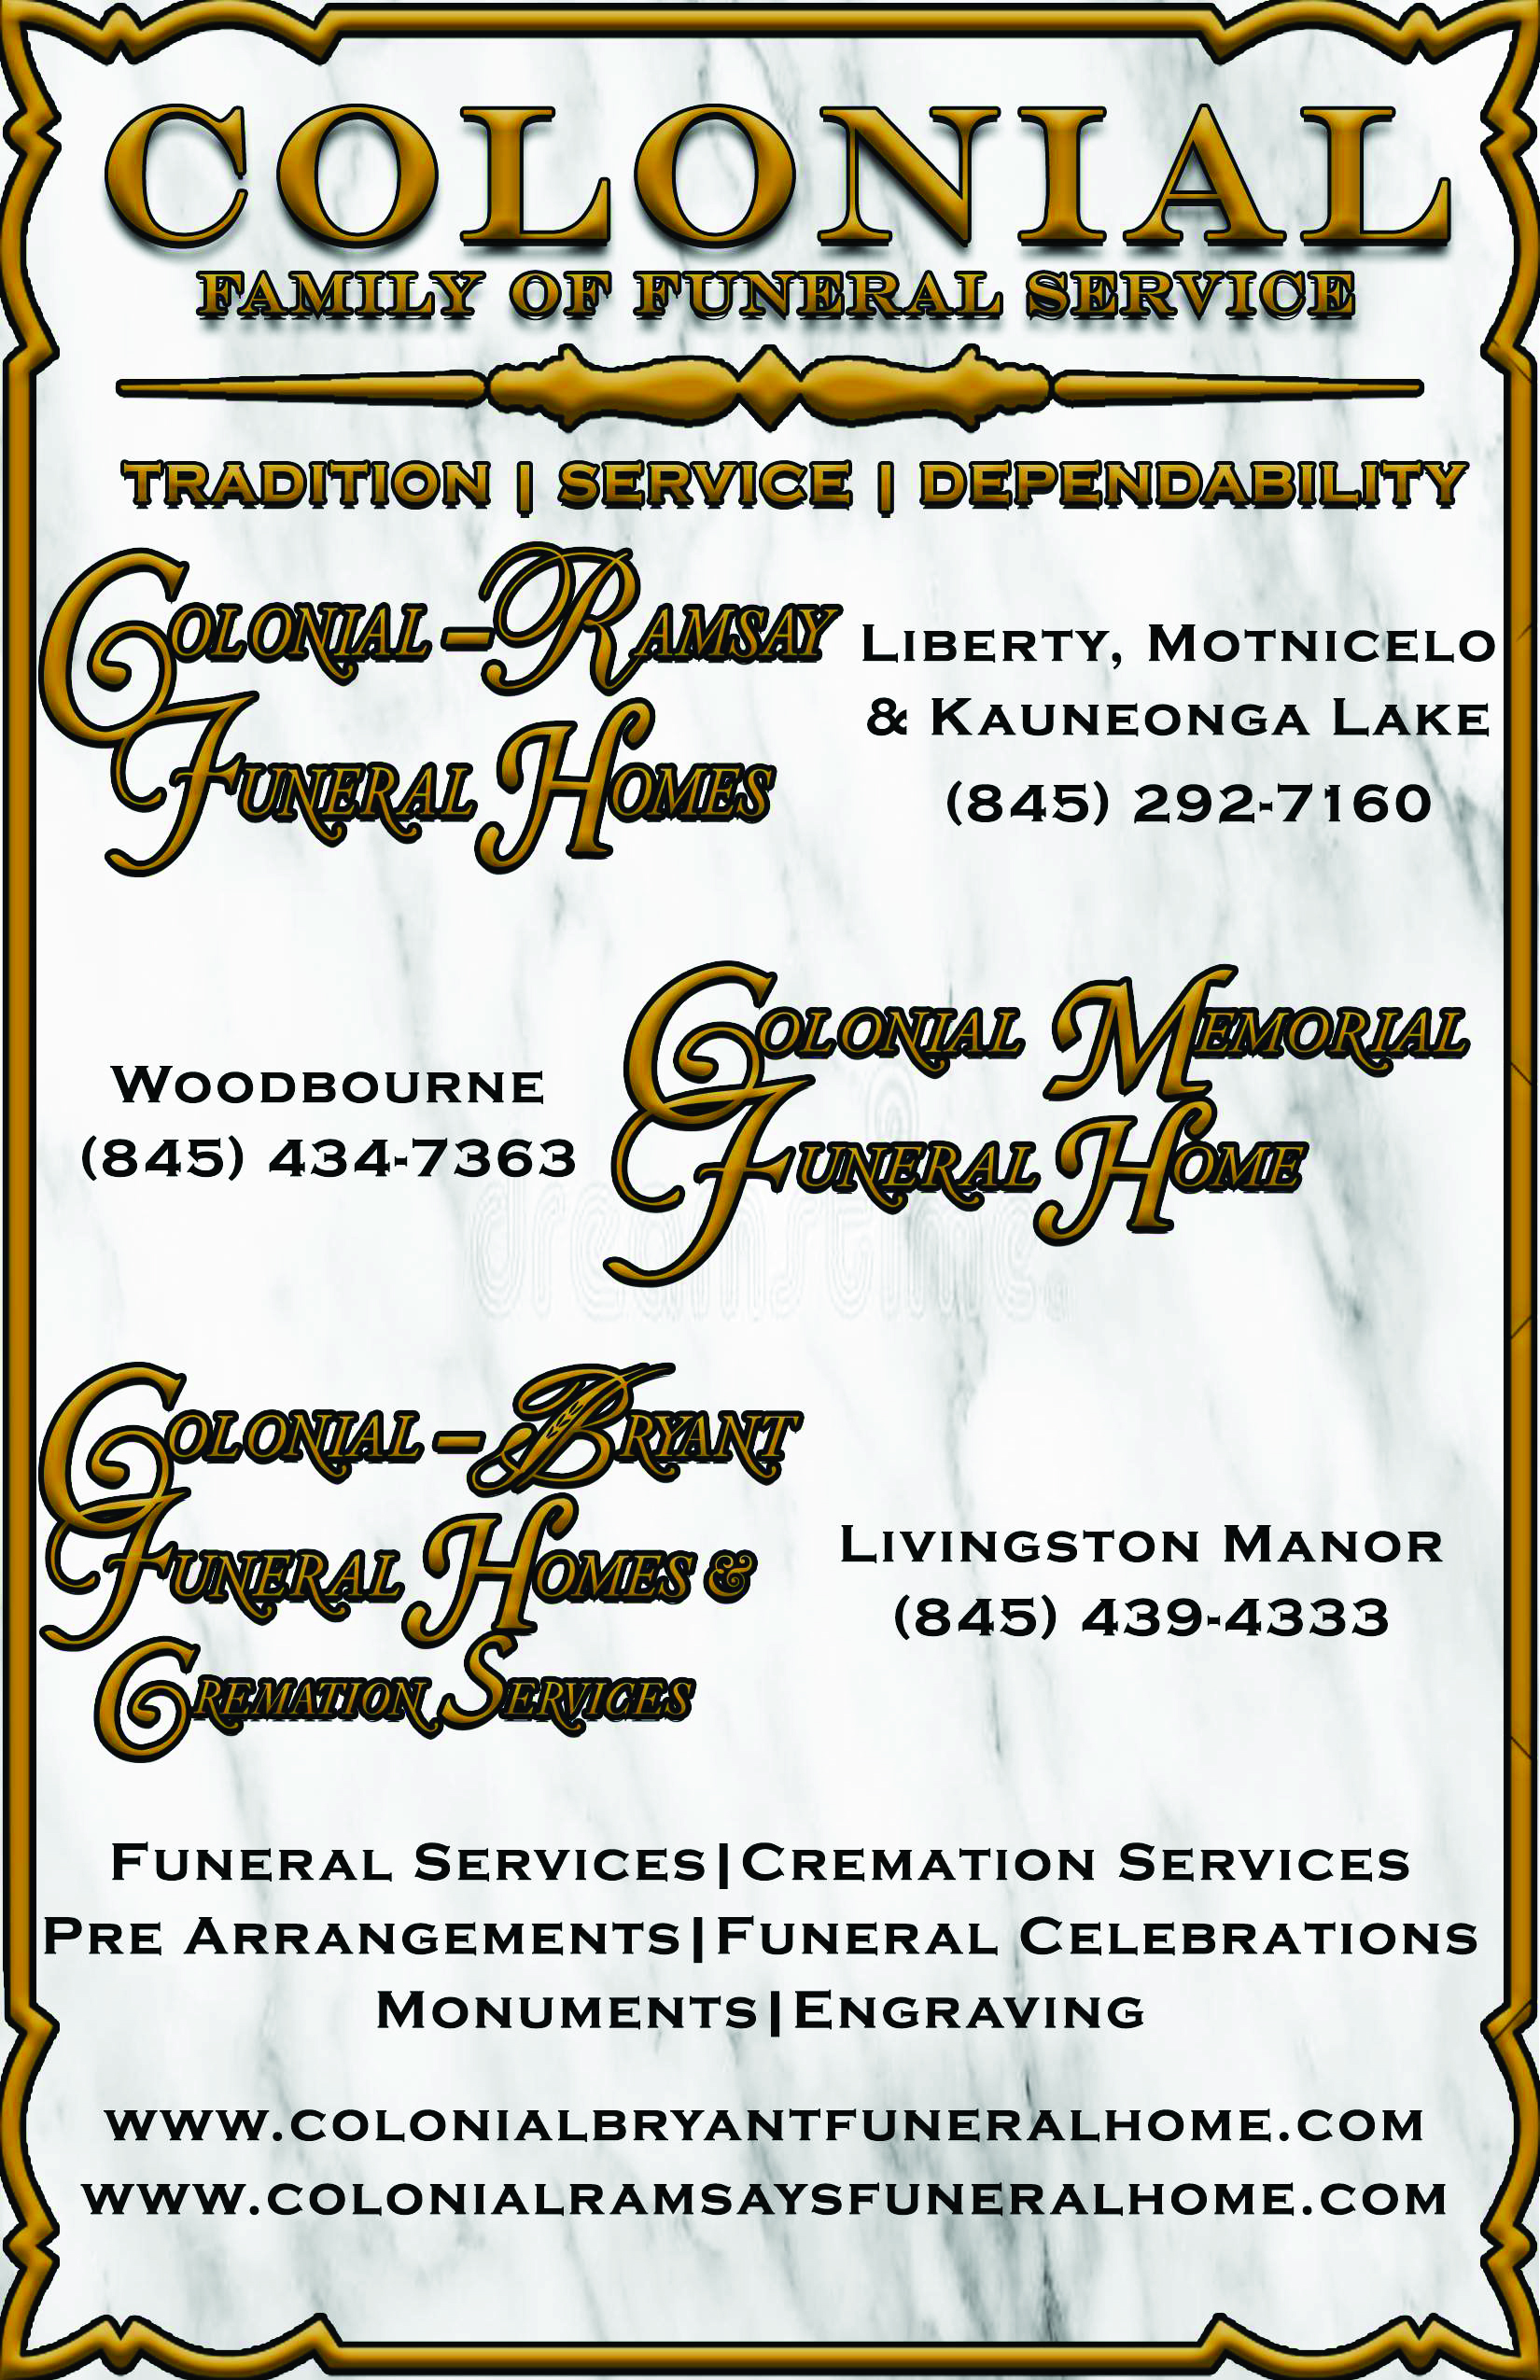 Colonial Family of Funeral Services